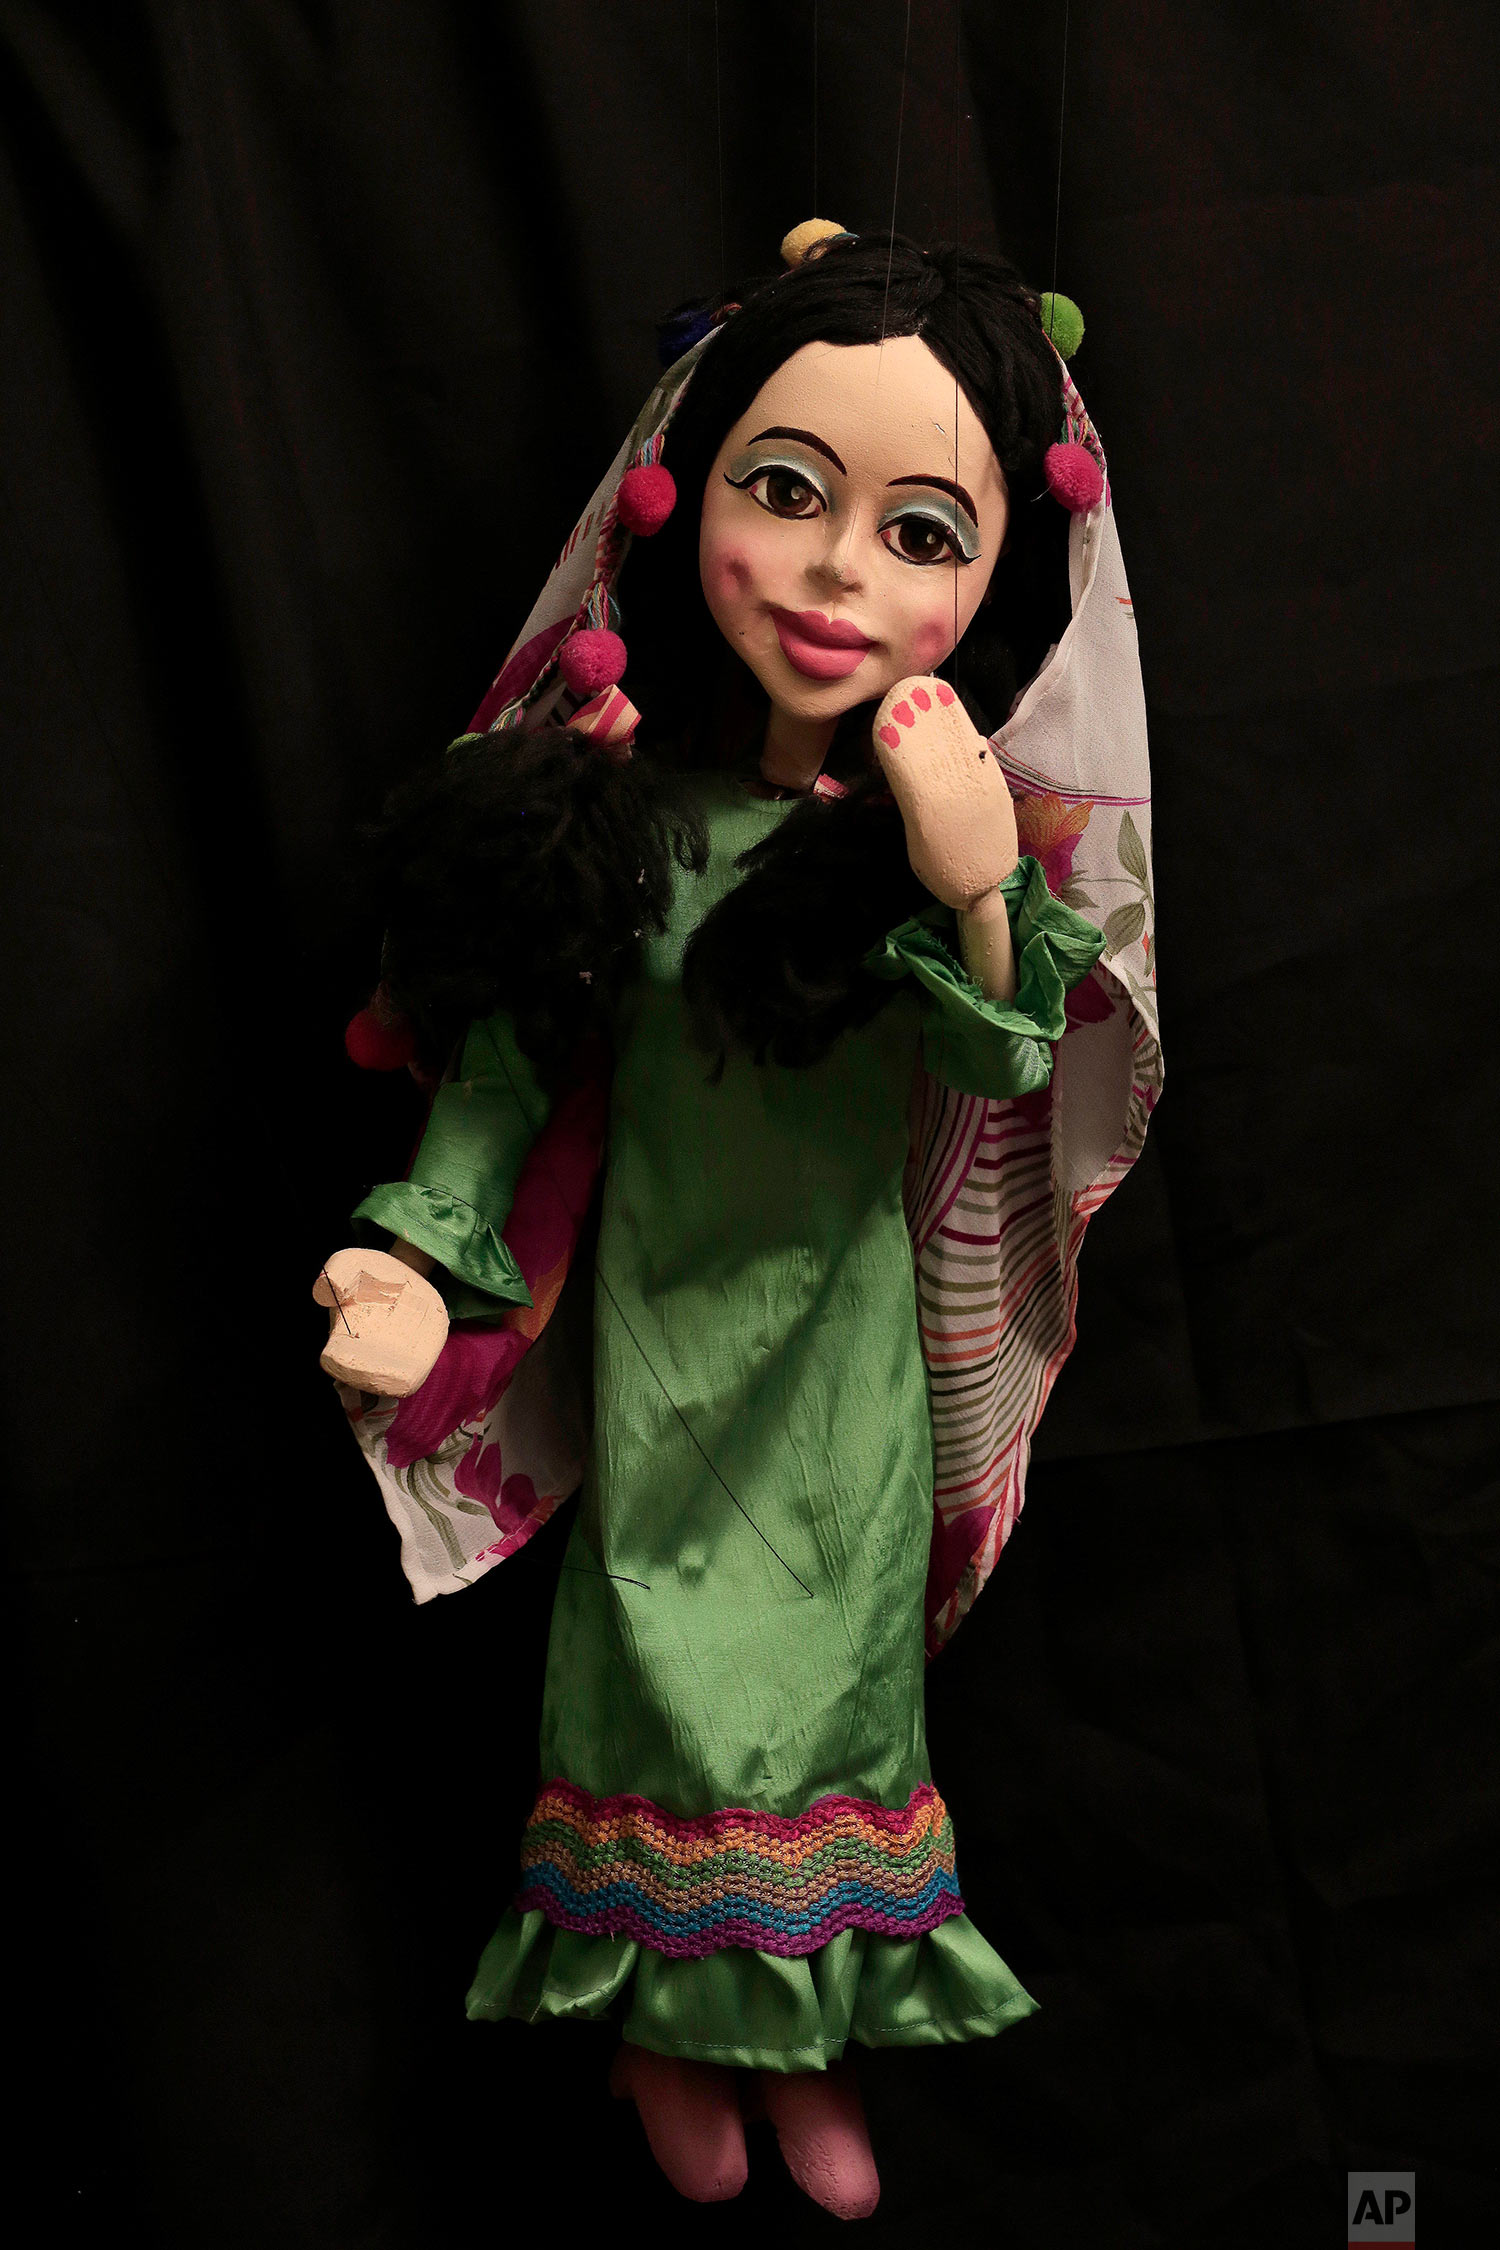 Amr Fawzi in egypt, a marionette maker strings together memories — ap